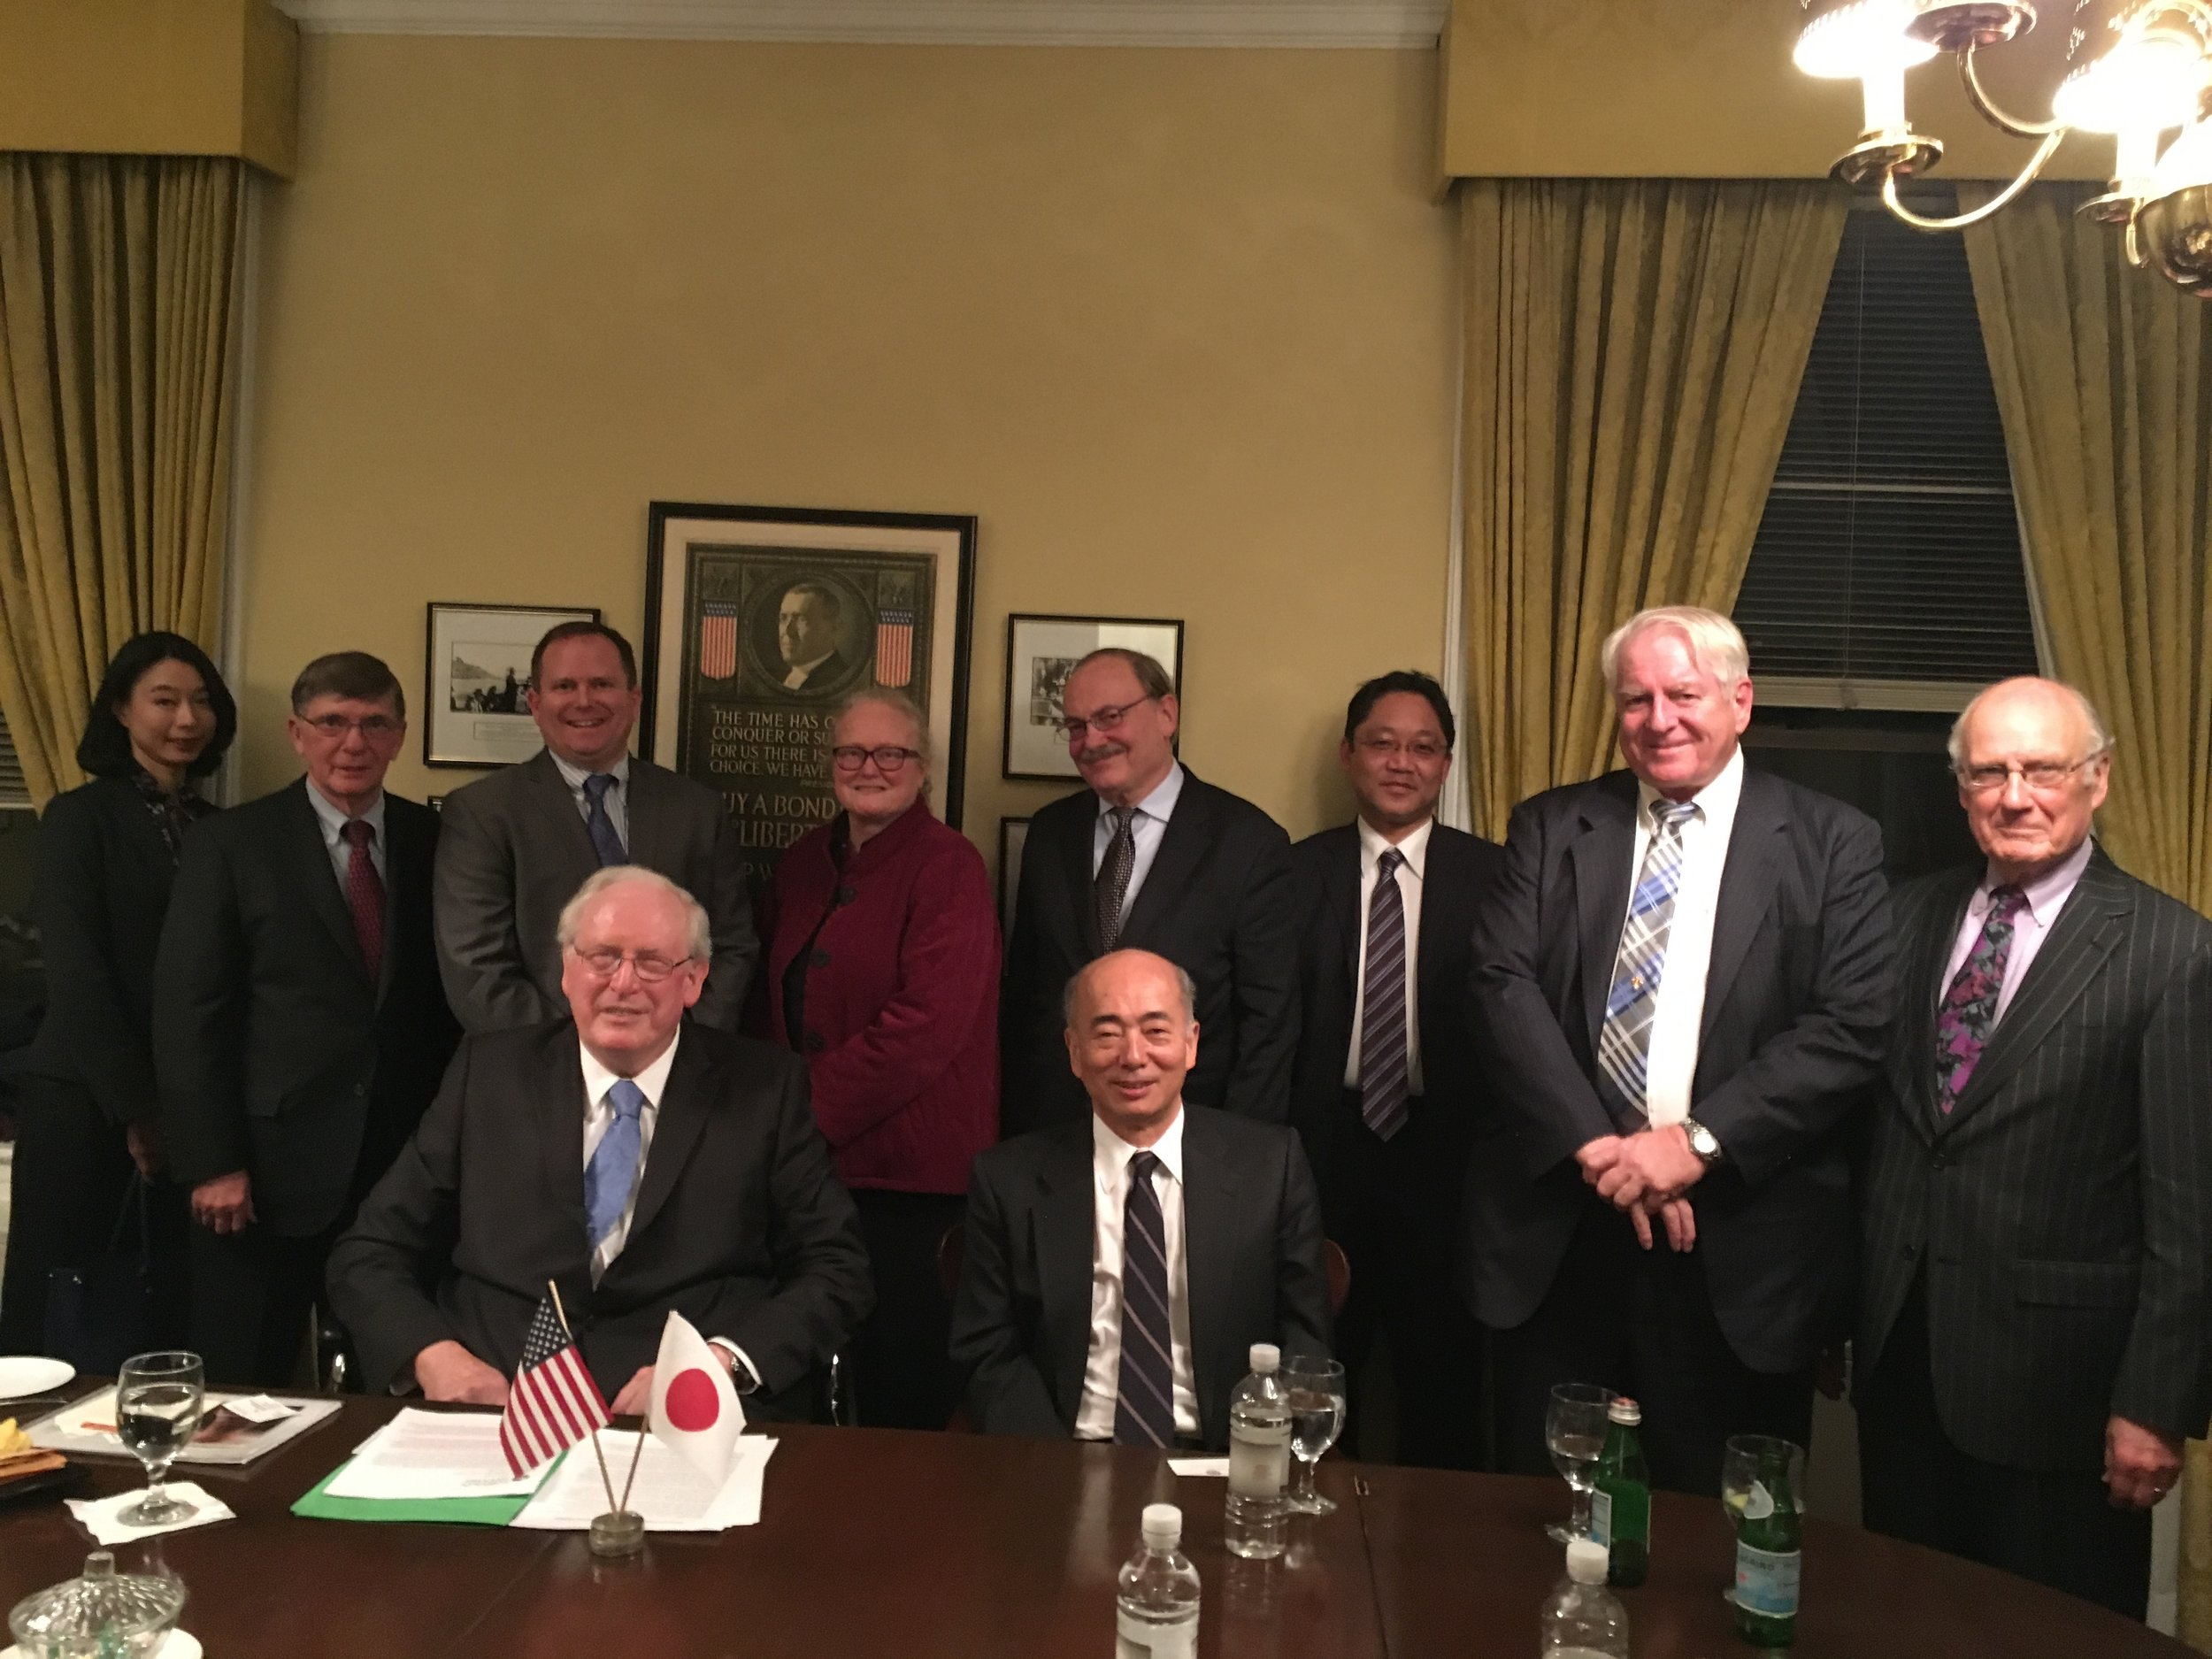 The re-launch of the American Friends of the International House of Japan on December 6, 2017 at the Cosmos Club in Washington, DC with special guests Senator Jay Rockefeller and Ambassador Kenichiro Sasae.